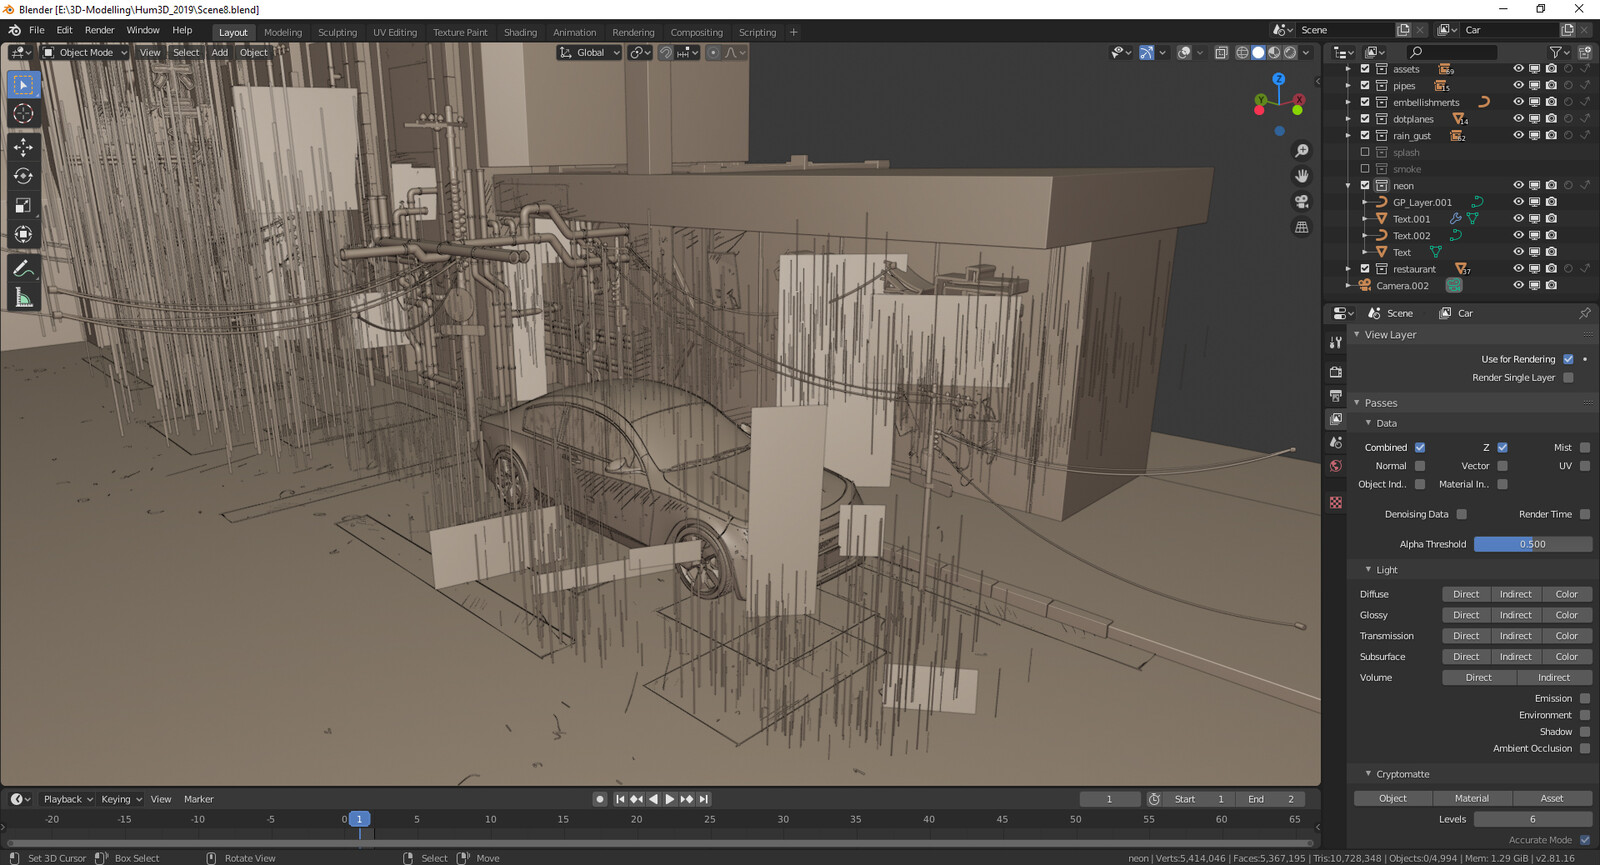 WIP 9: Viewport of the entire scene